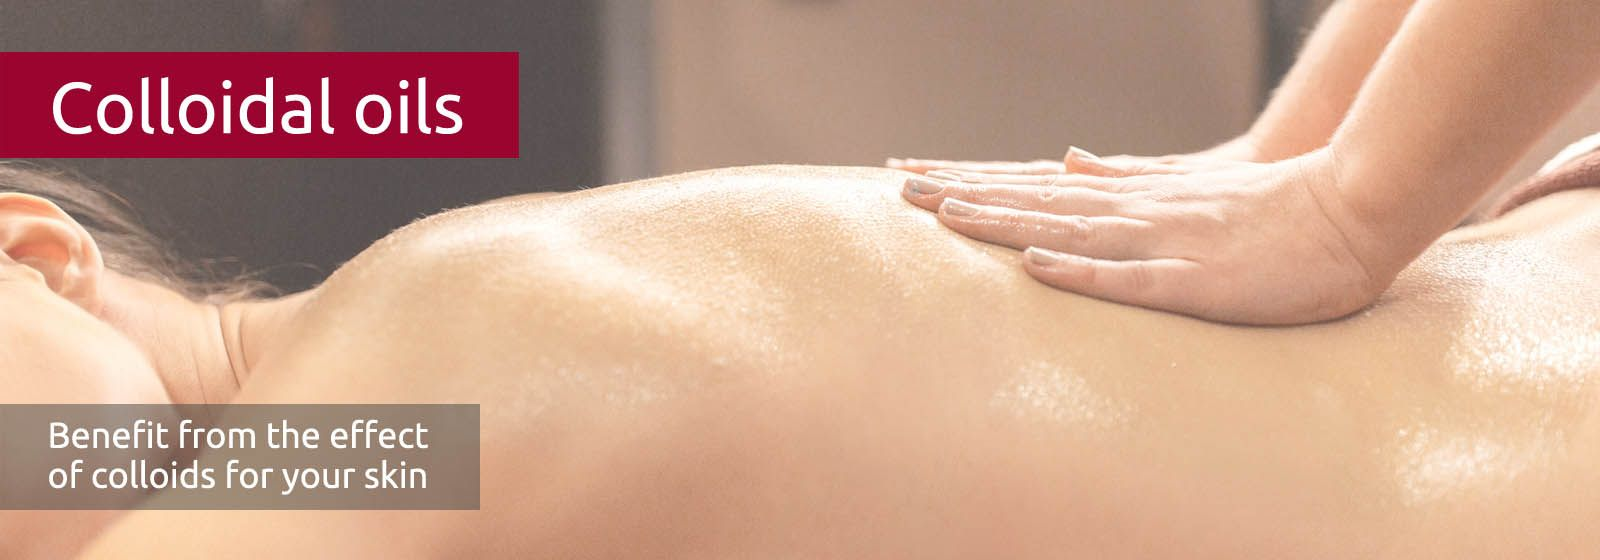 A woman's back is gently massaged and shines with oil